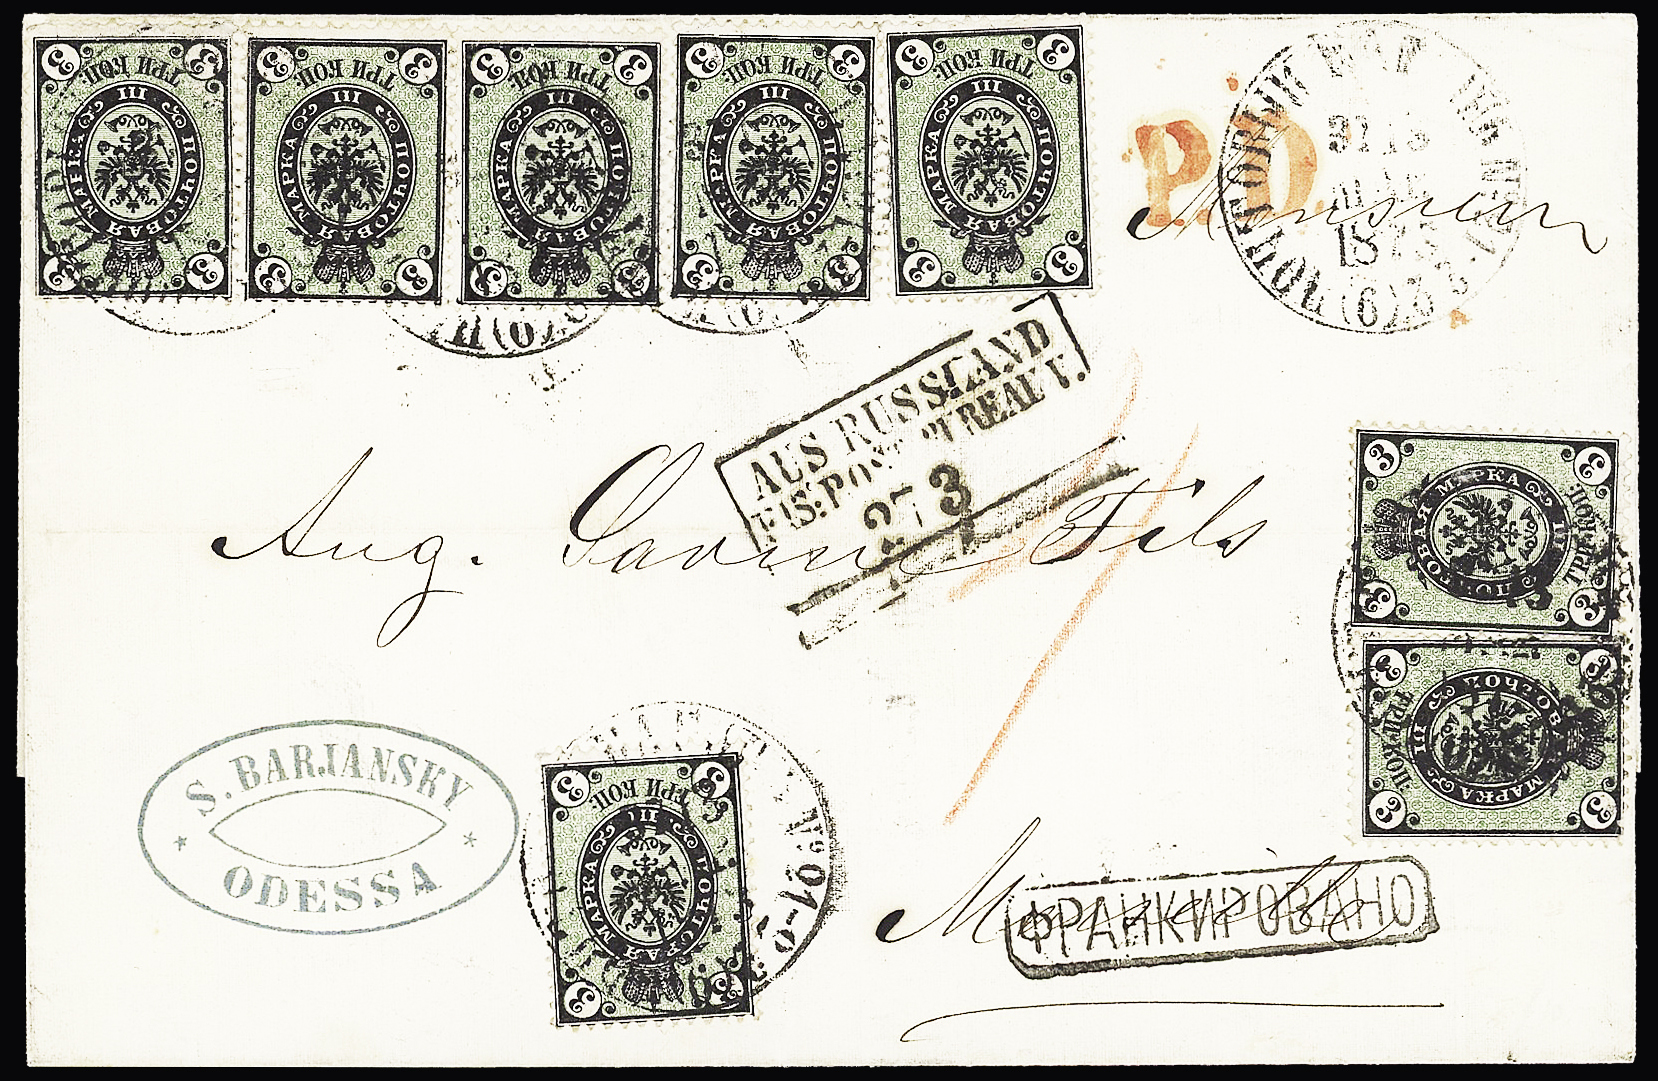 Lot 351 - Eastern Europe » Russia and USSR  -  Le Timbre Classique SA SALE ON OFFERS N ° 37 PARIS